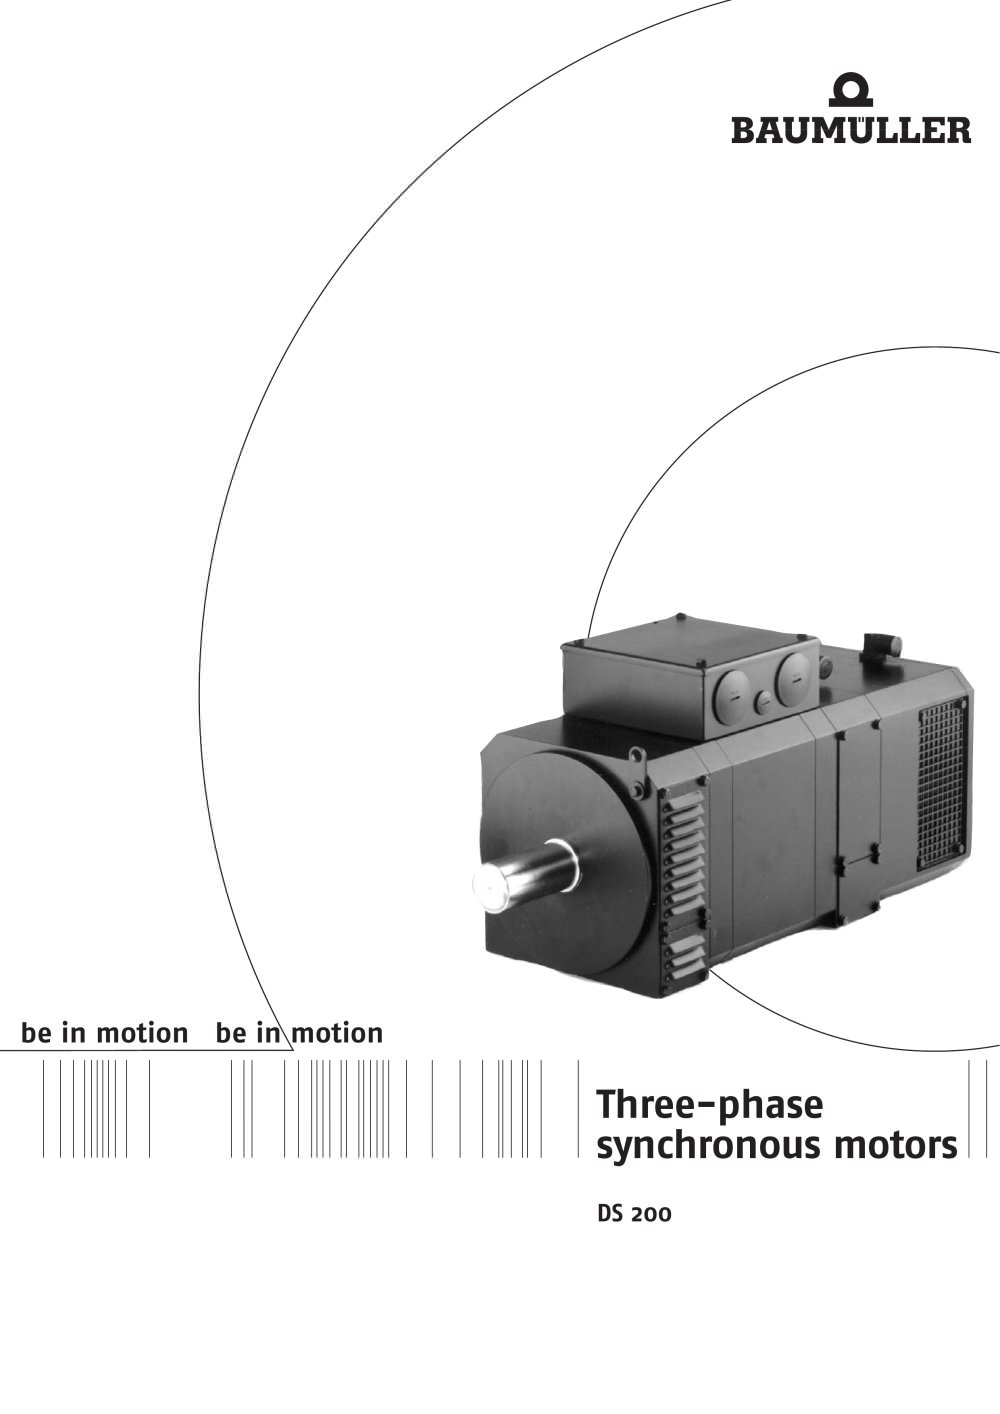 Three phase synchronous motors DS 200 - 1 / 20 Pages